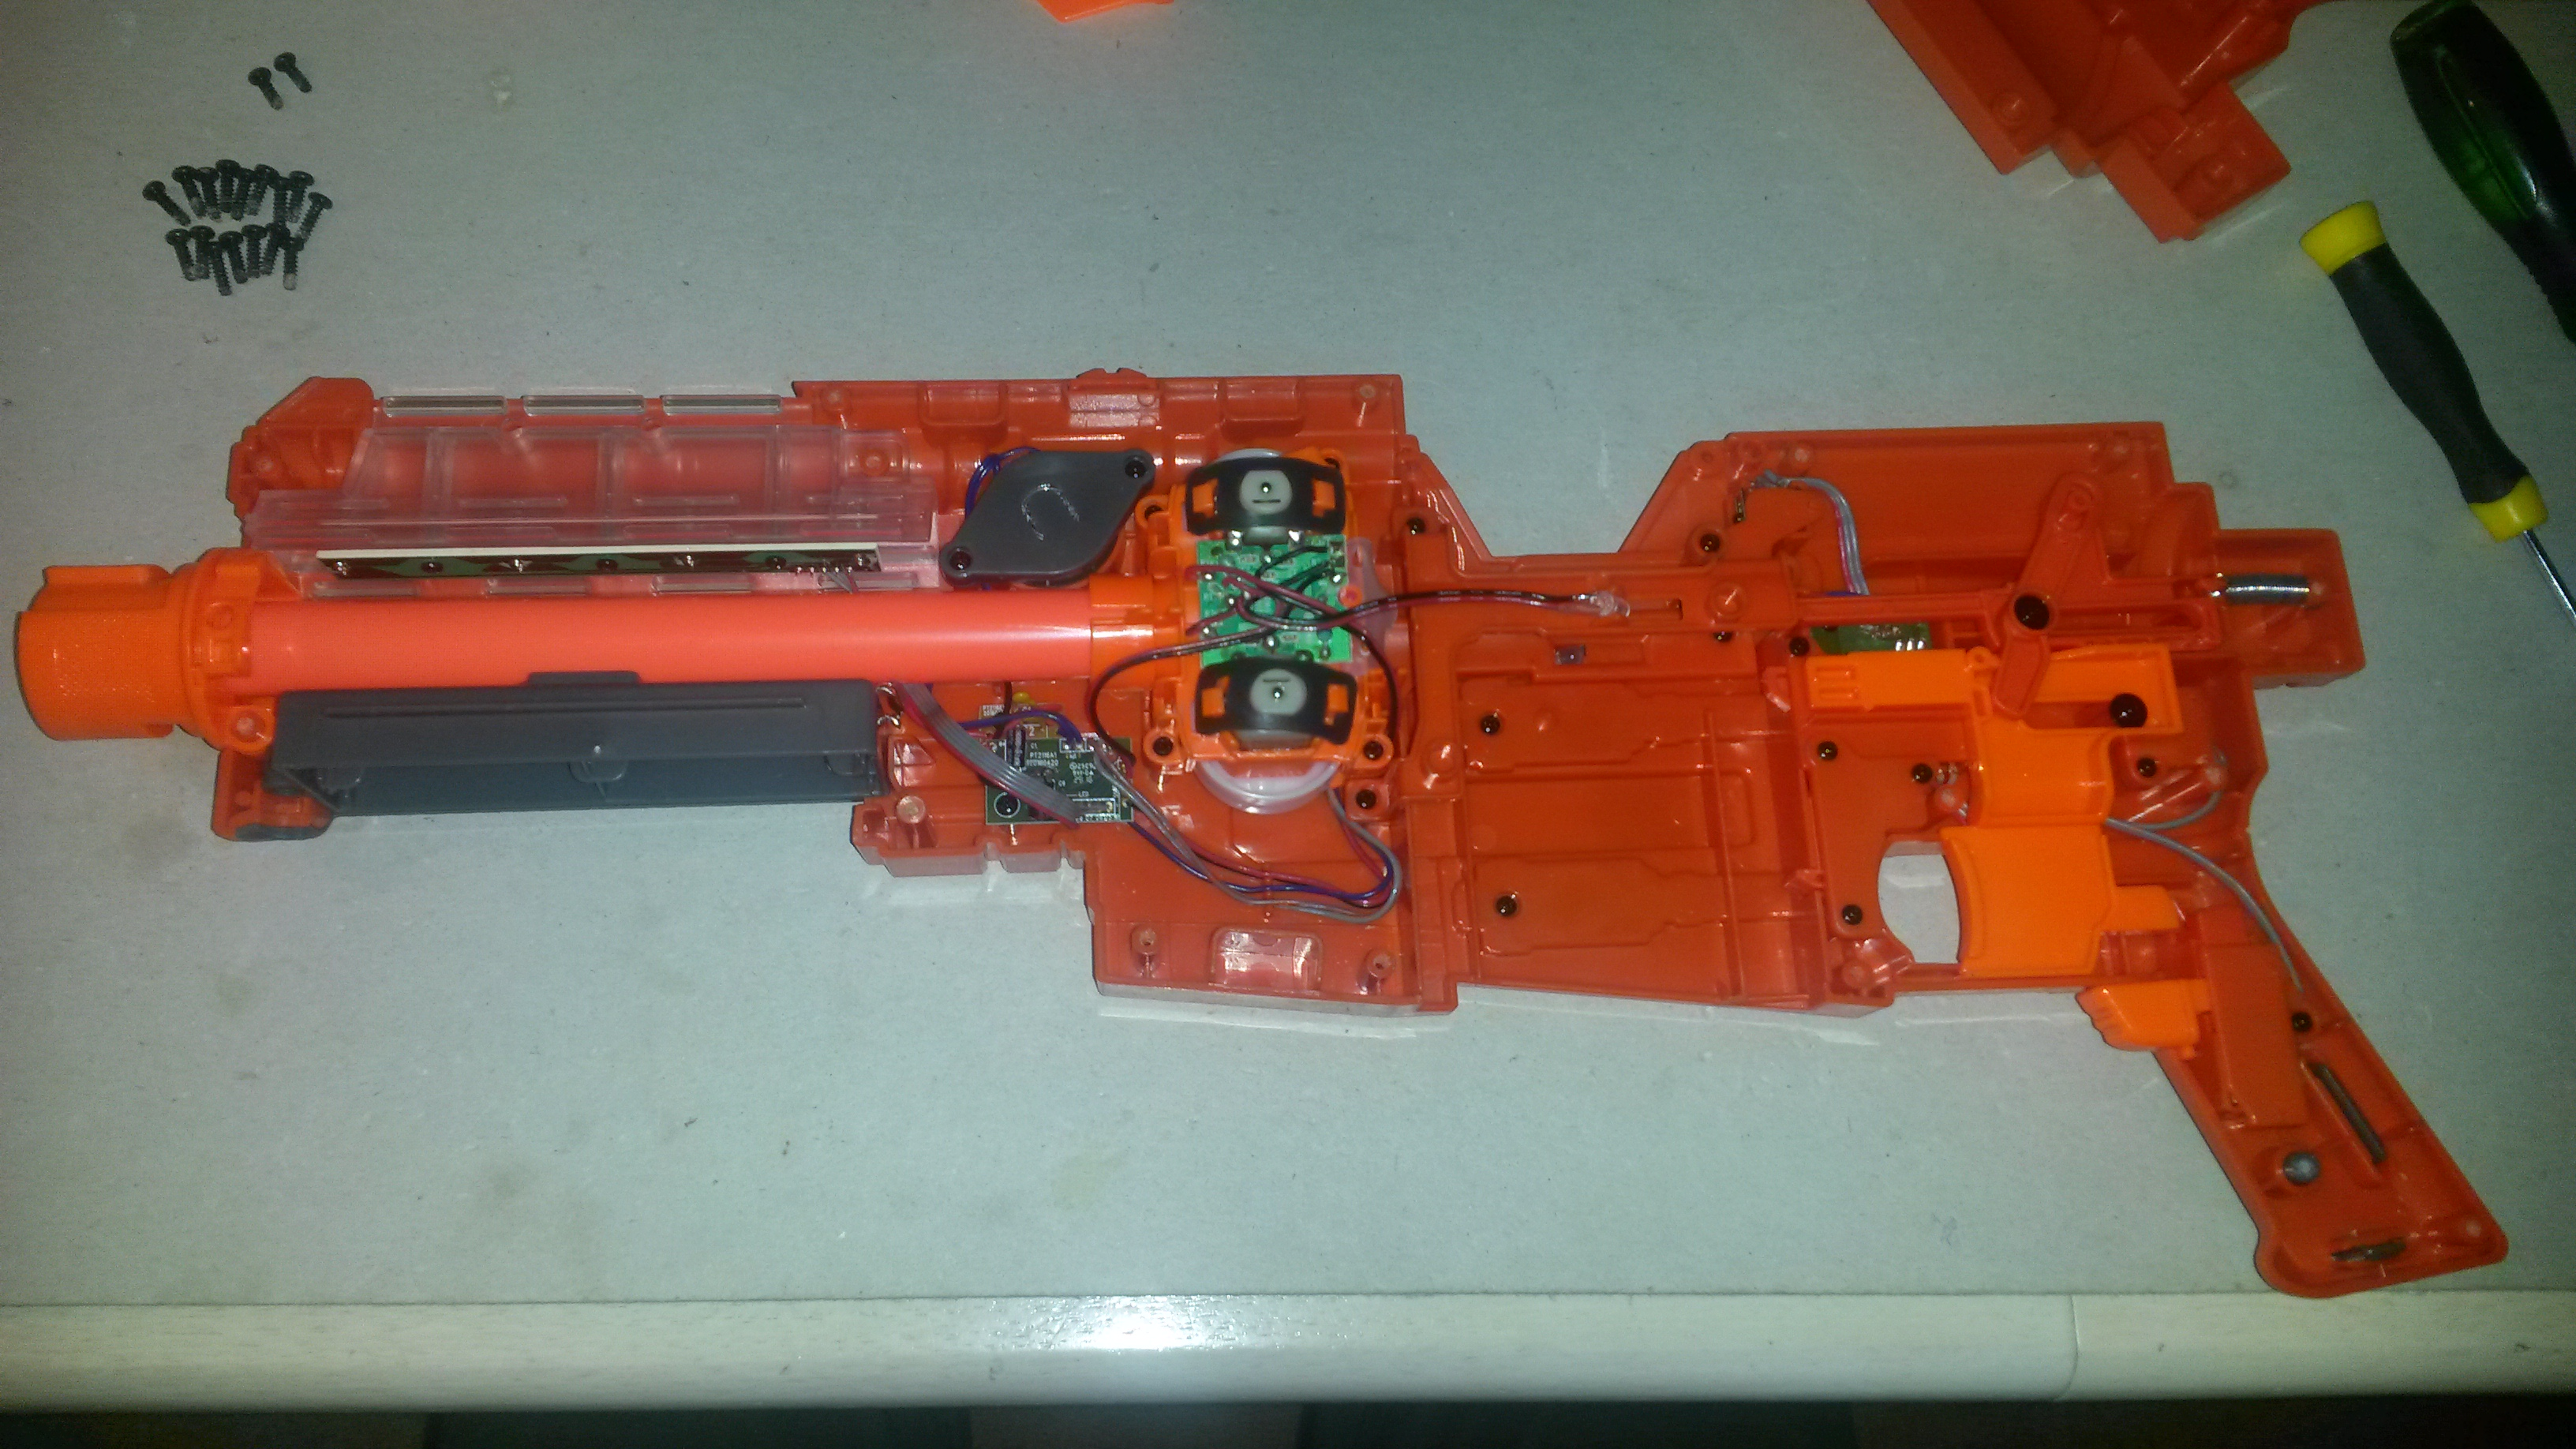 Internals of the blaster